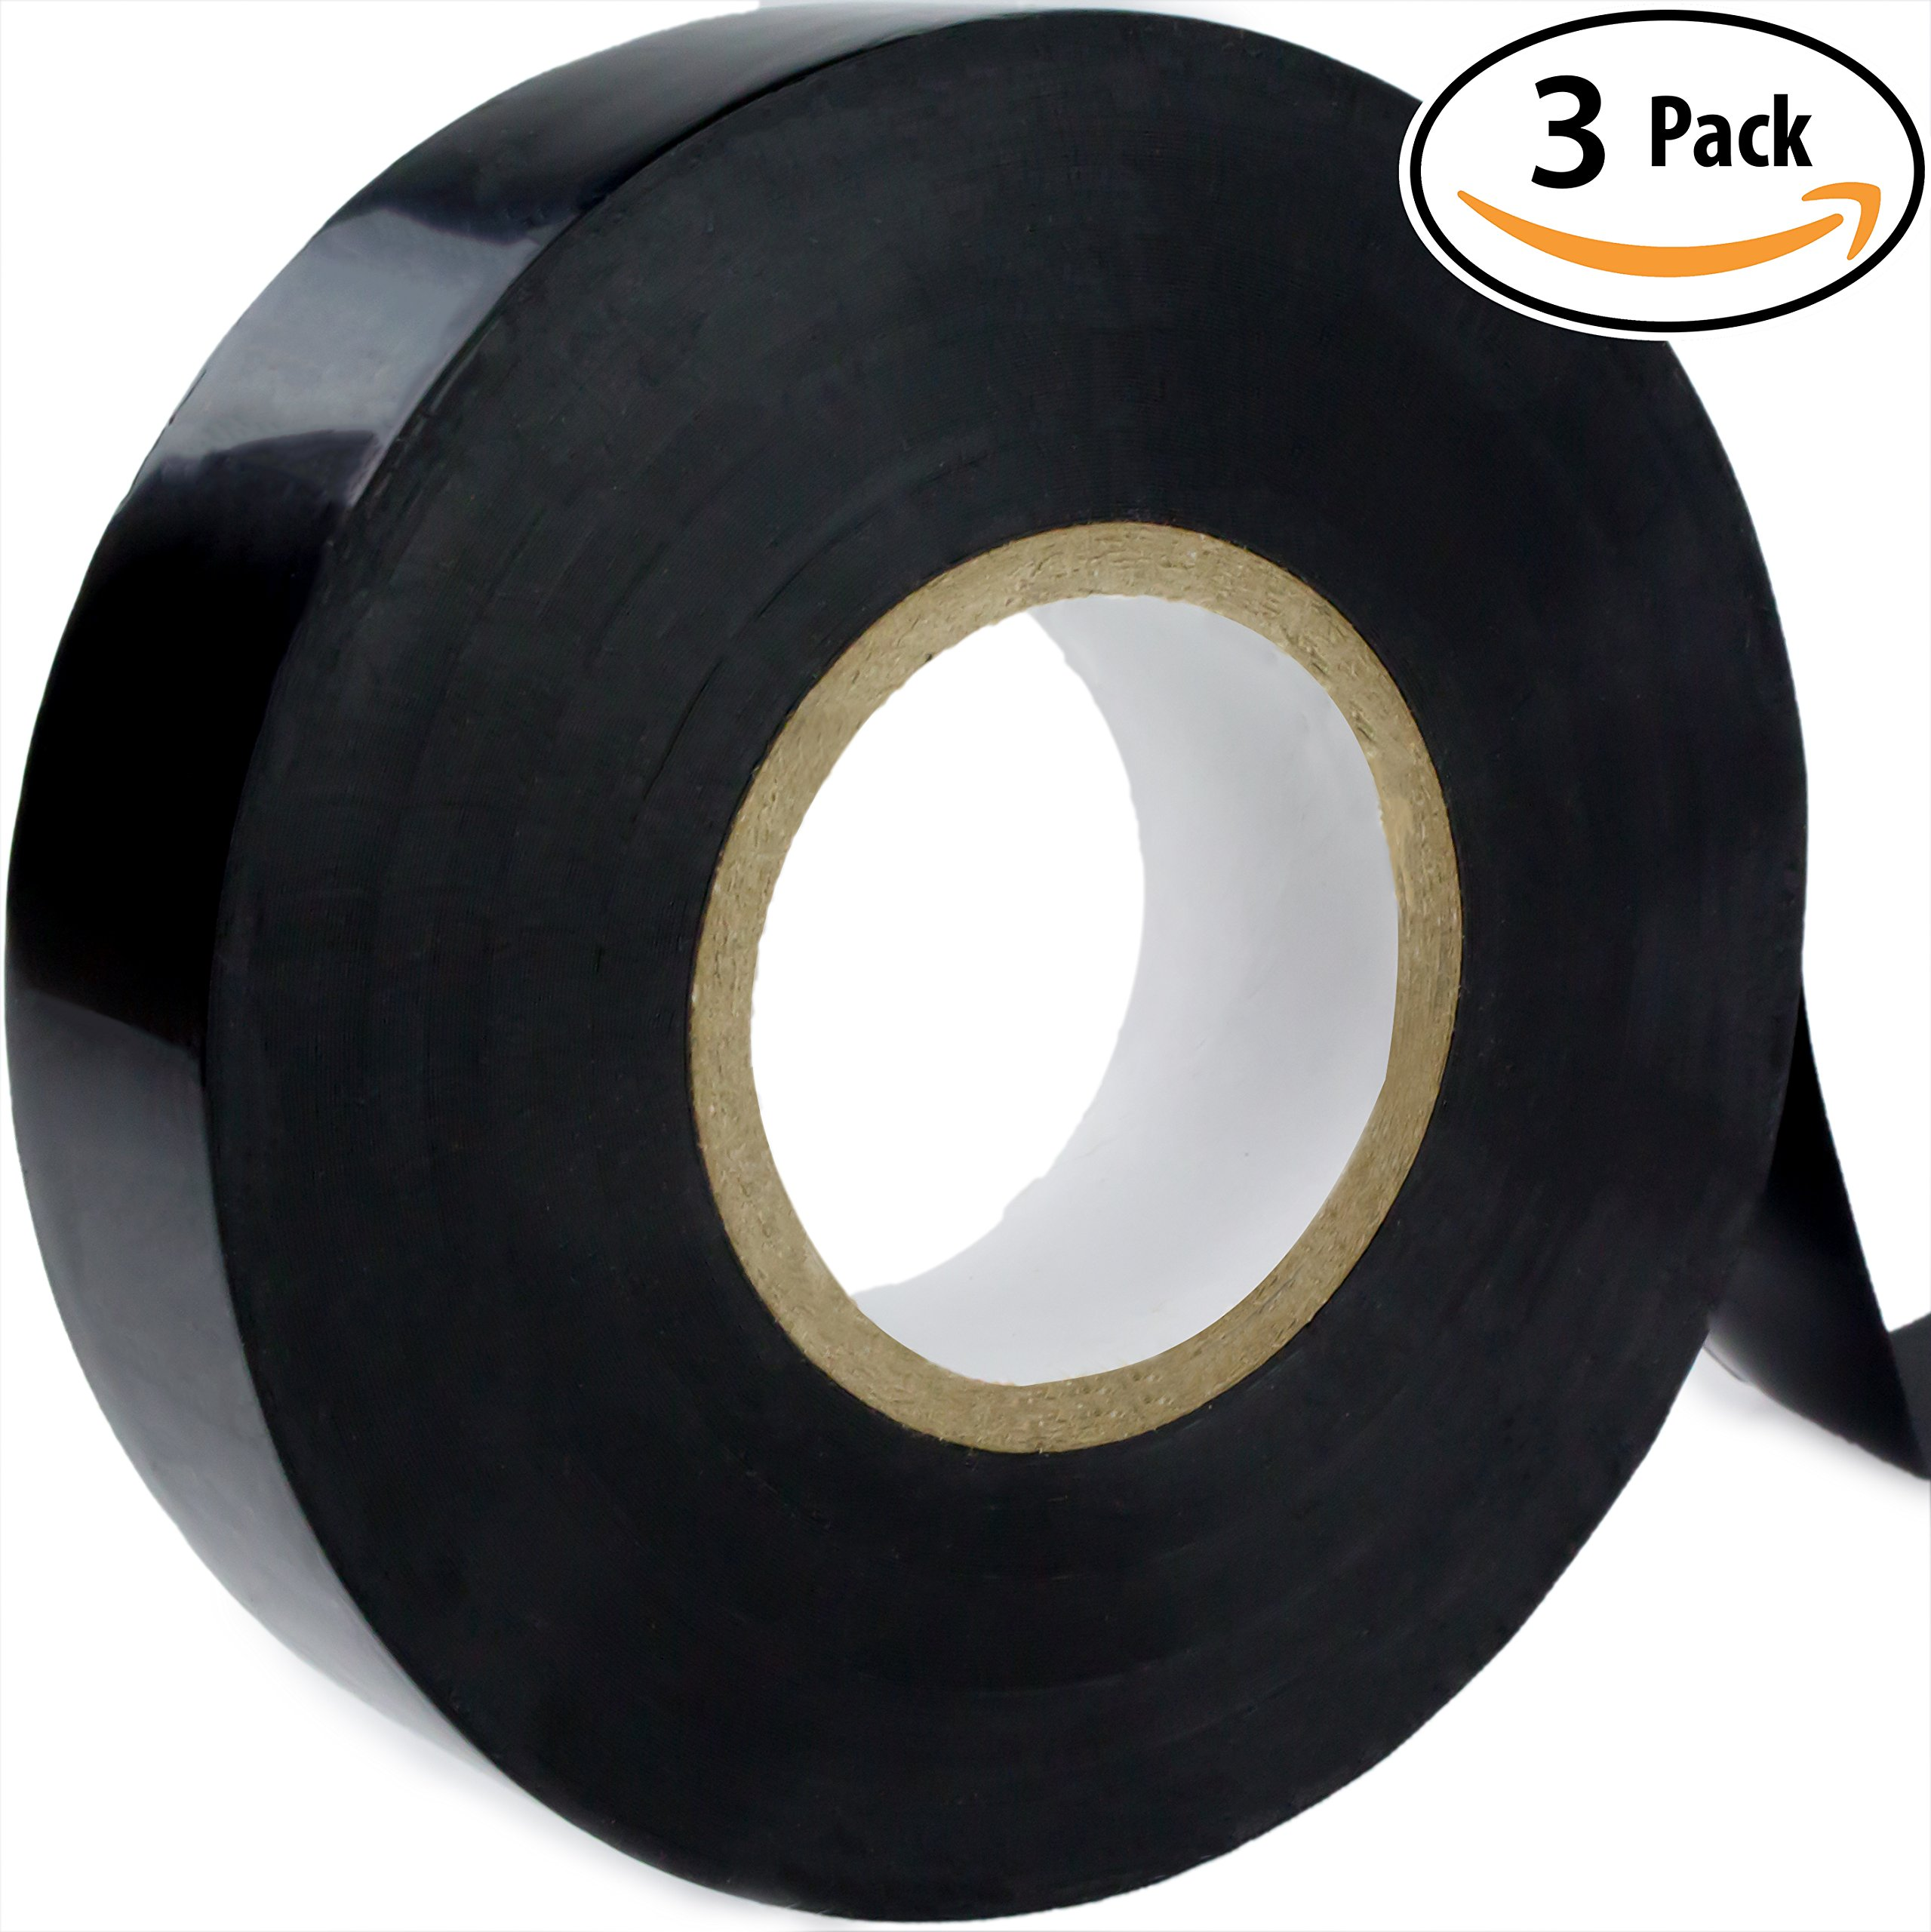 Nova Supply Professional-Grade Black Electrical Tape 3 Pack. 3/4 in x 60 ft. Made of Flame Retardant, UV & Weather Resistant Vinyl. UL & CSA Certified for Industrial Uses Insulating Up to 600V